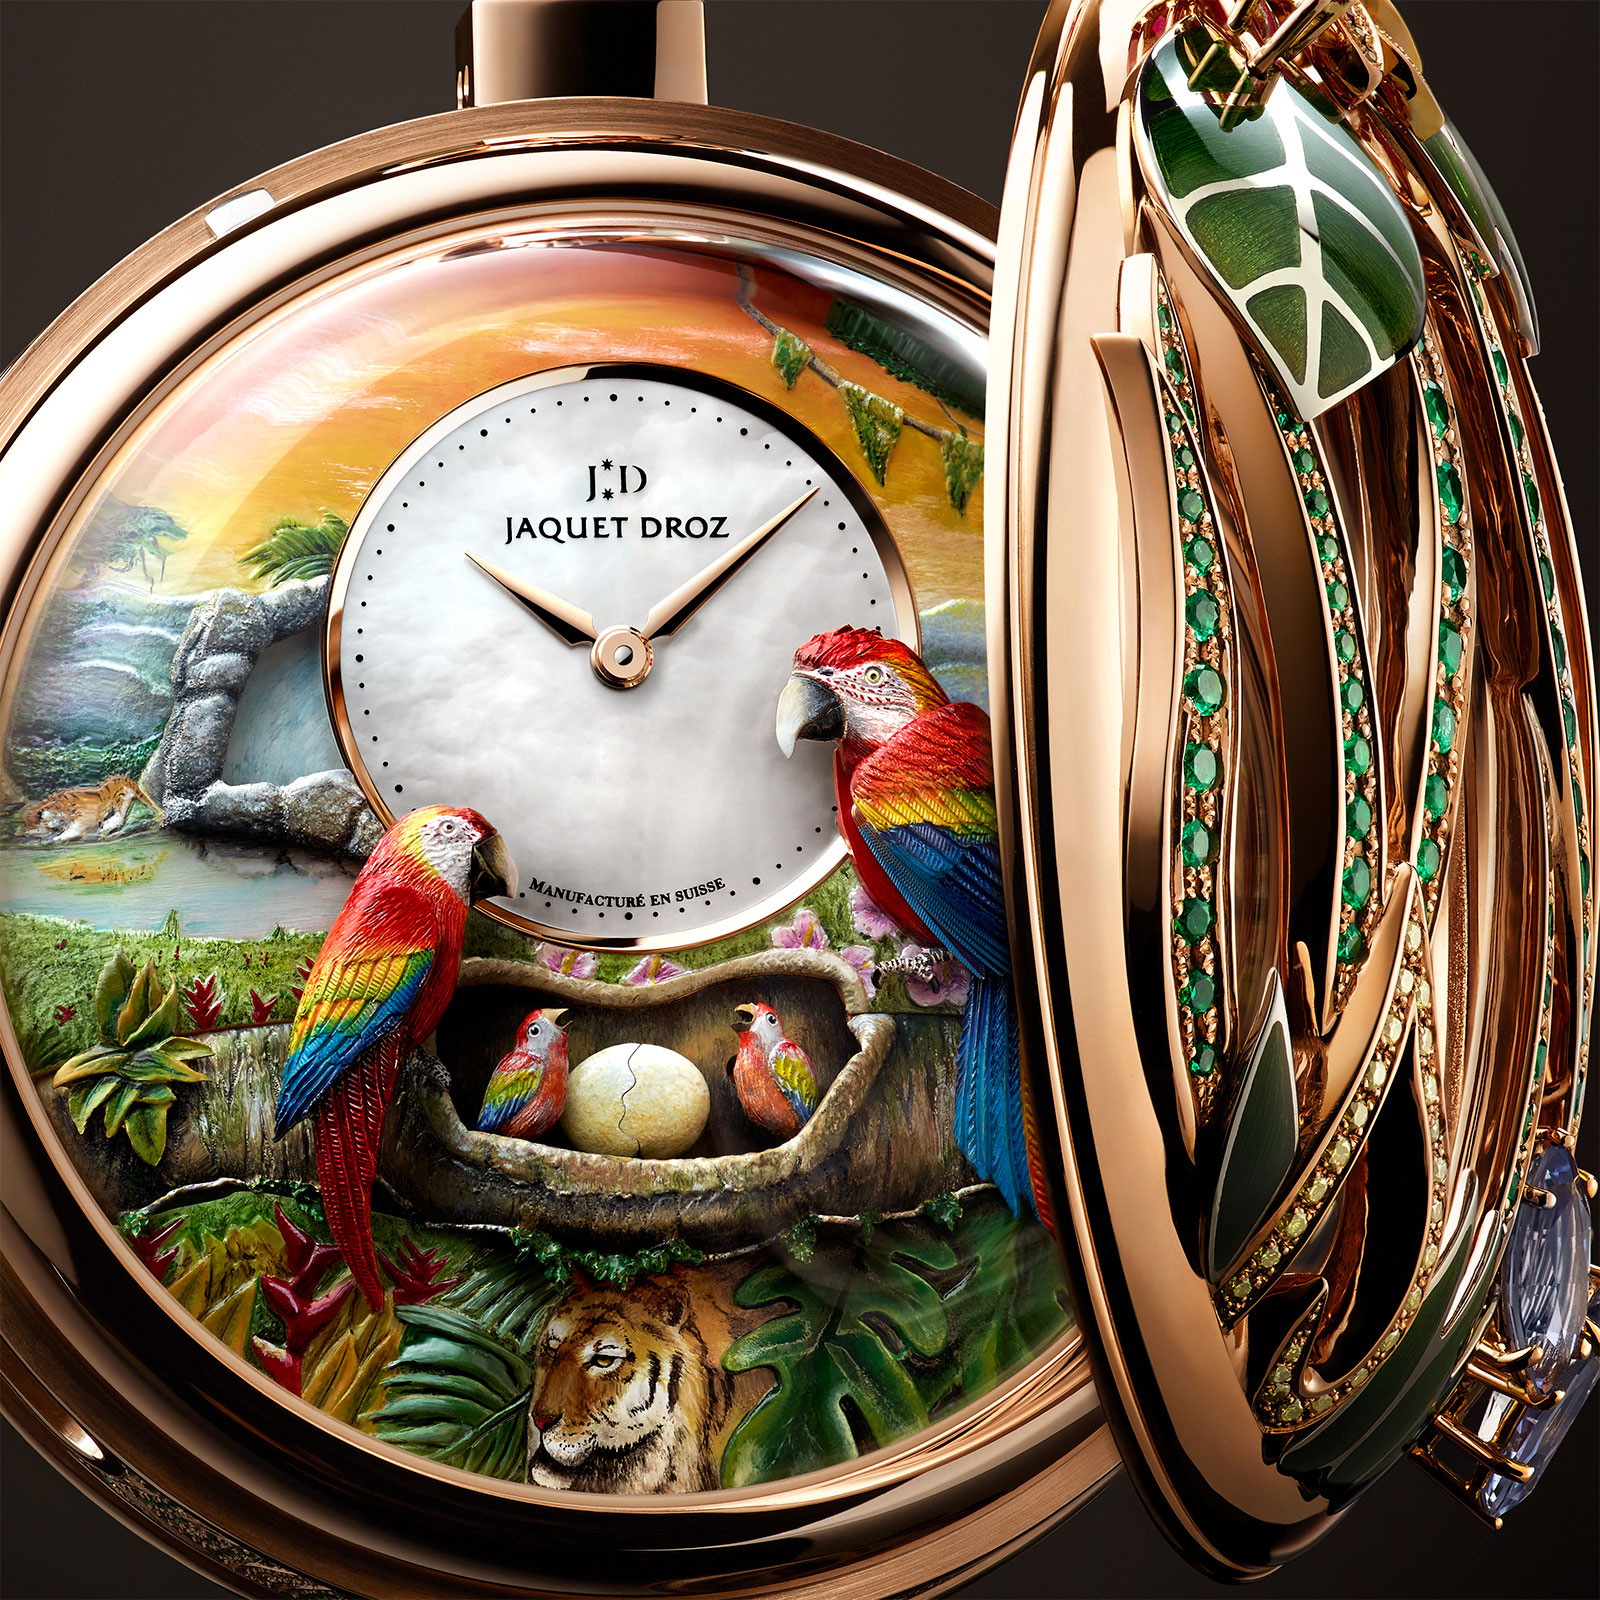 Jaquet-Droz-Parrot-Repeater-Pocket-Watch-7